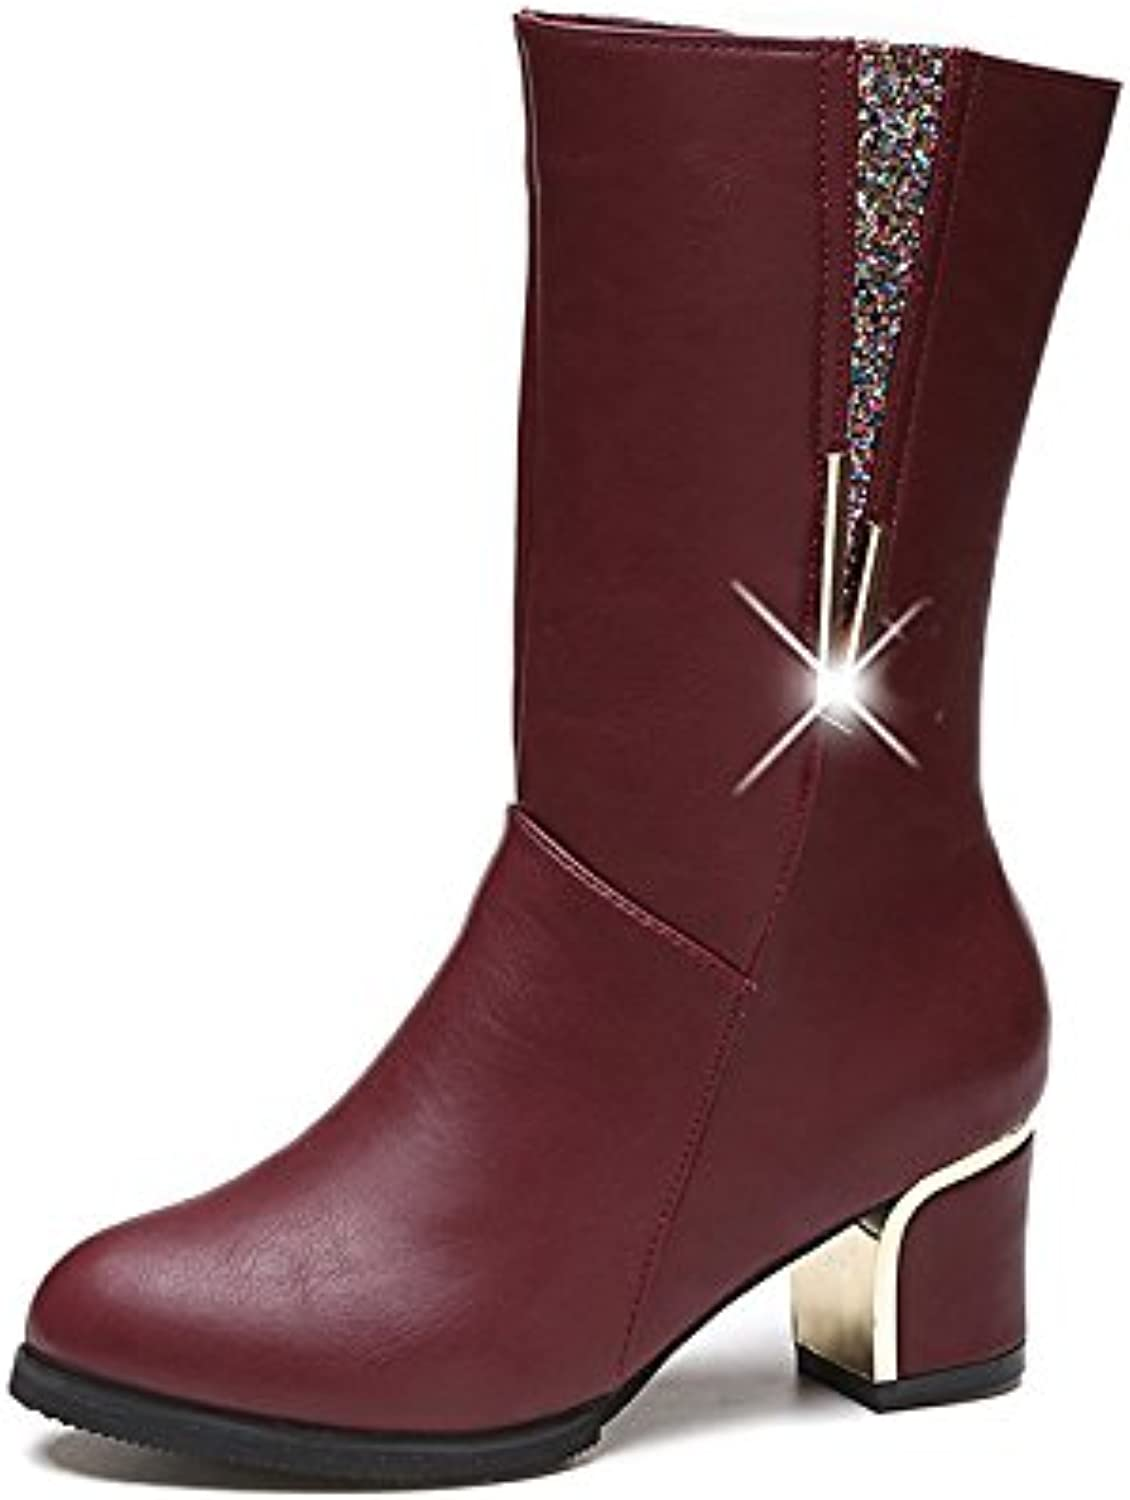 WYMBS Women's shoes Autumn Winter in The Tube Rough with Round Head Martin Boots Sequins Short Boots,Wine Red,41